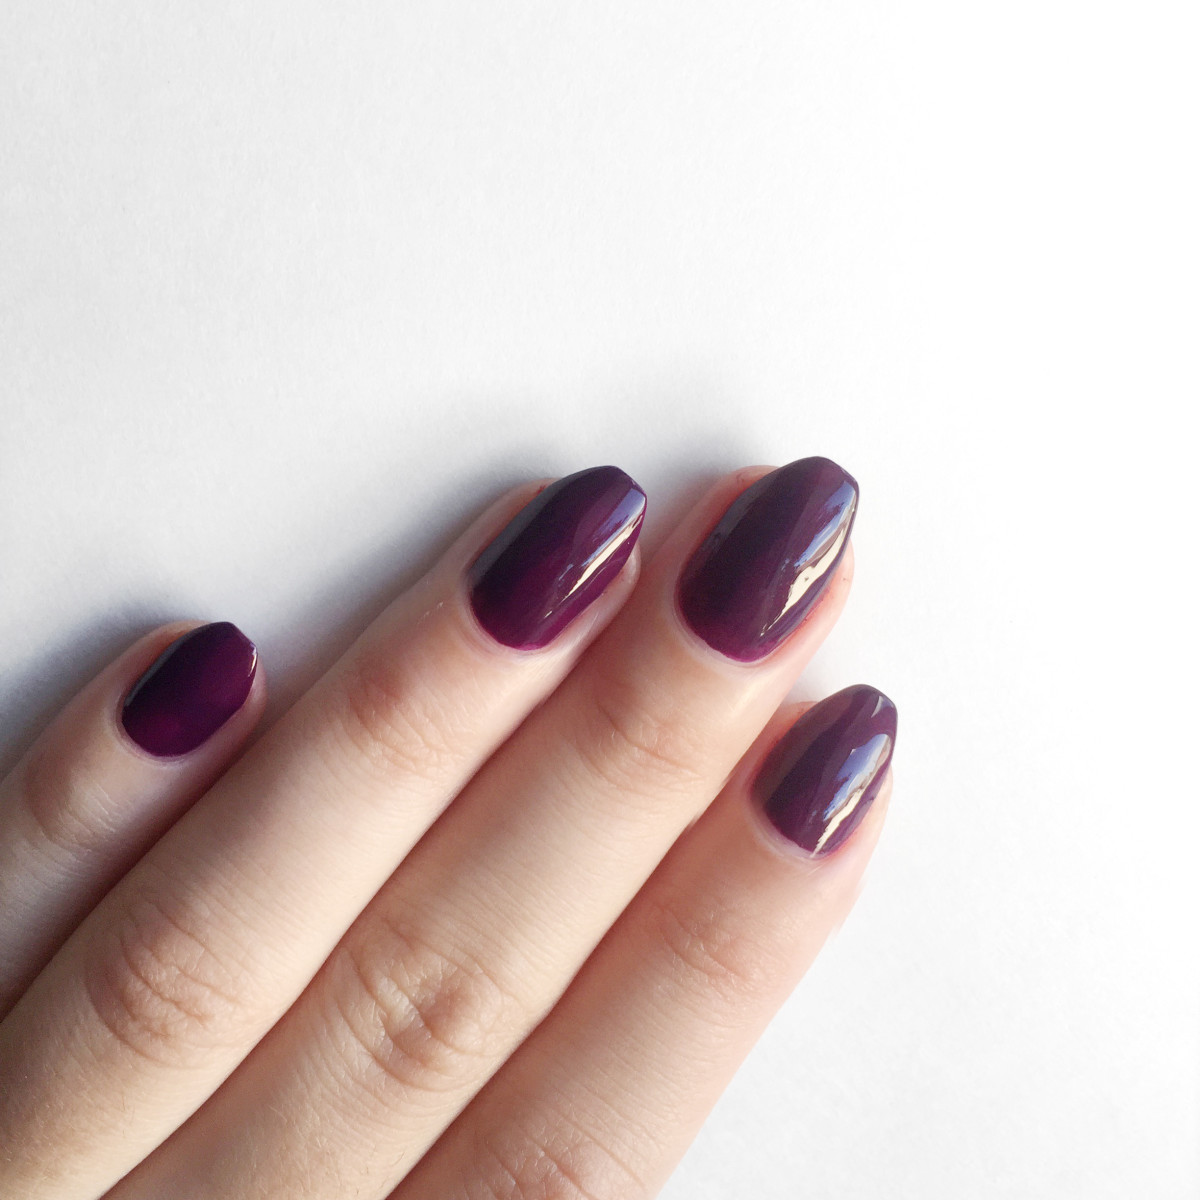 Zoya Focus Flair Nail Polish Collection Review And Swatches The Skincare Edit